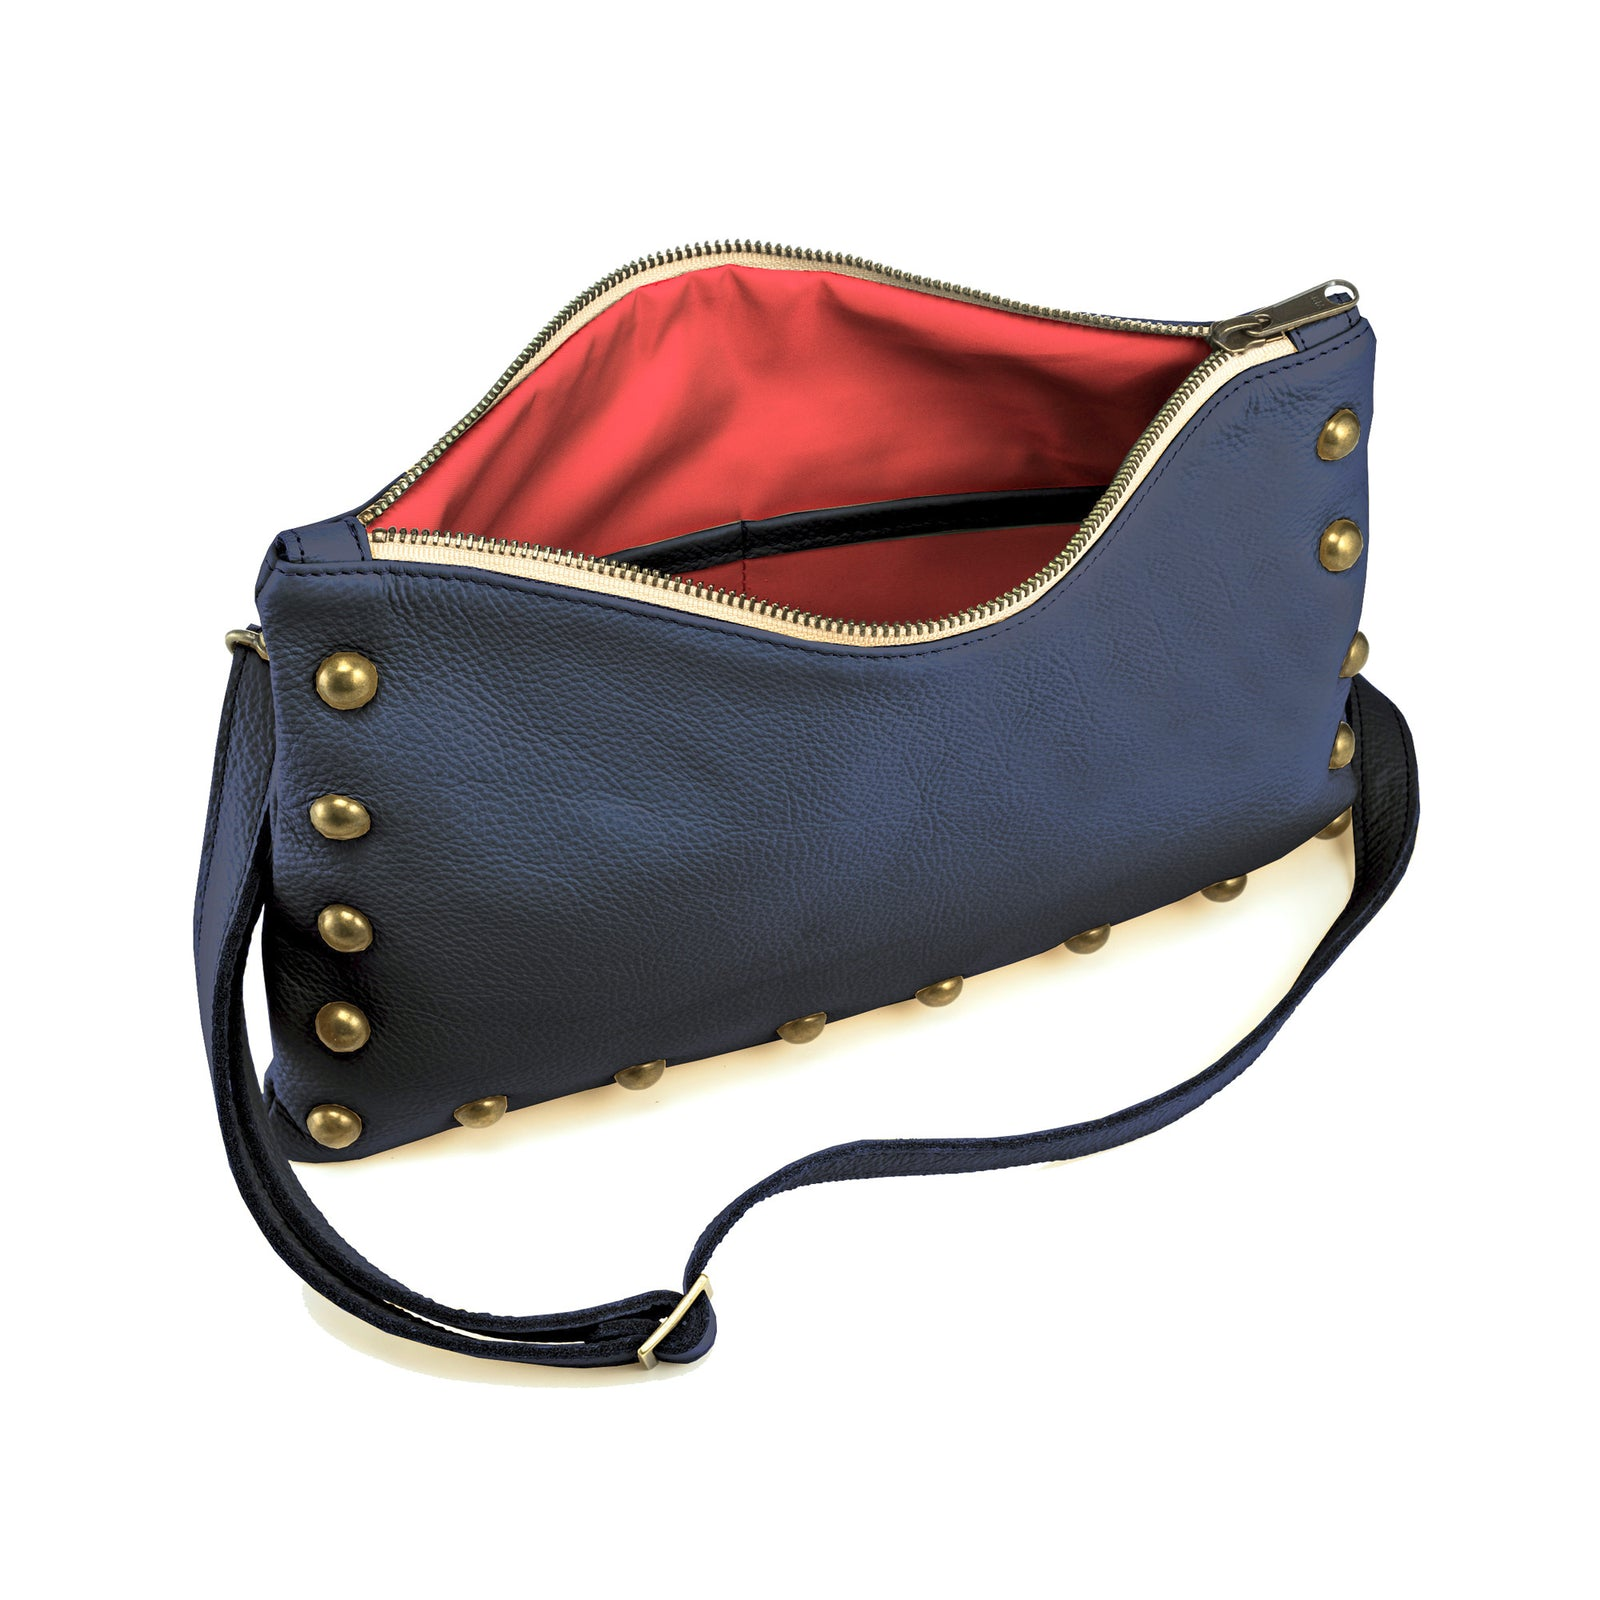 Nikki Clutch/Crossbody - Old Royal - Brynn Capella, Small Crossbody